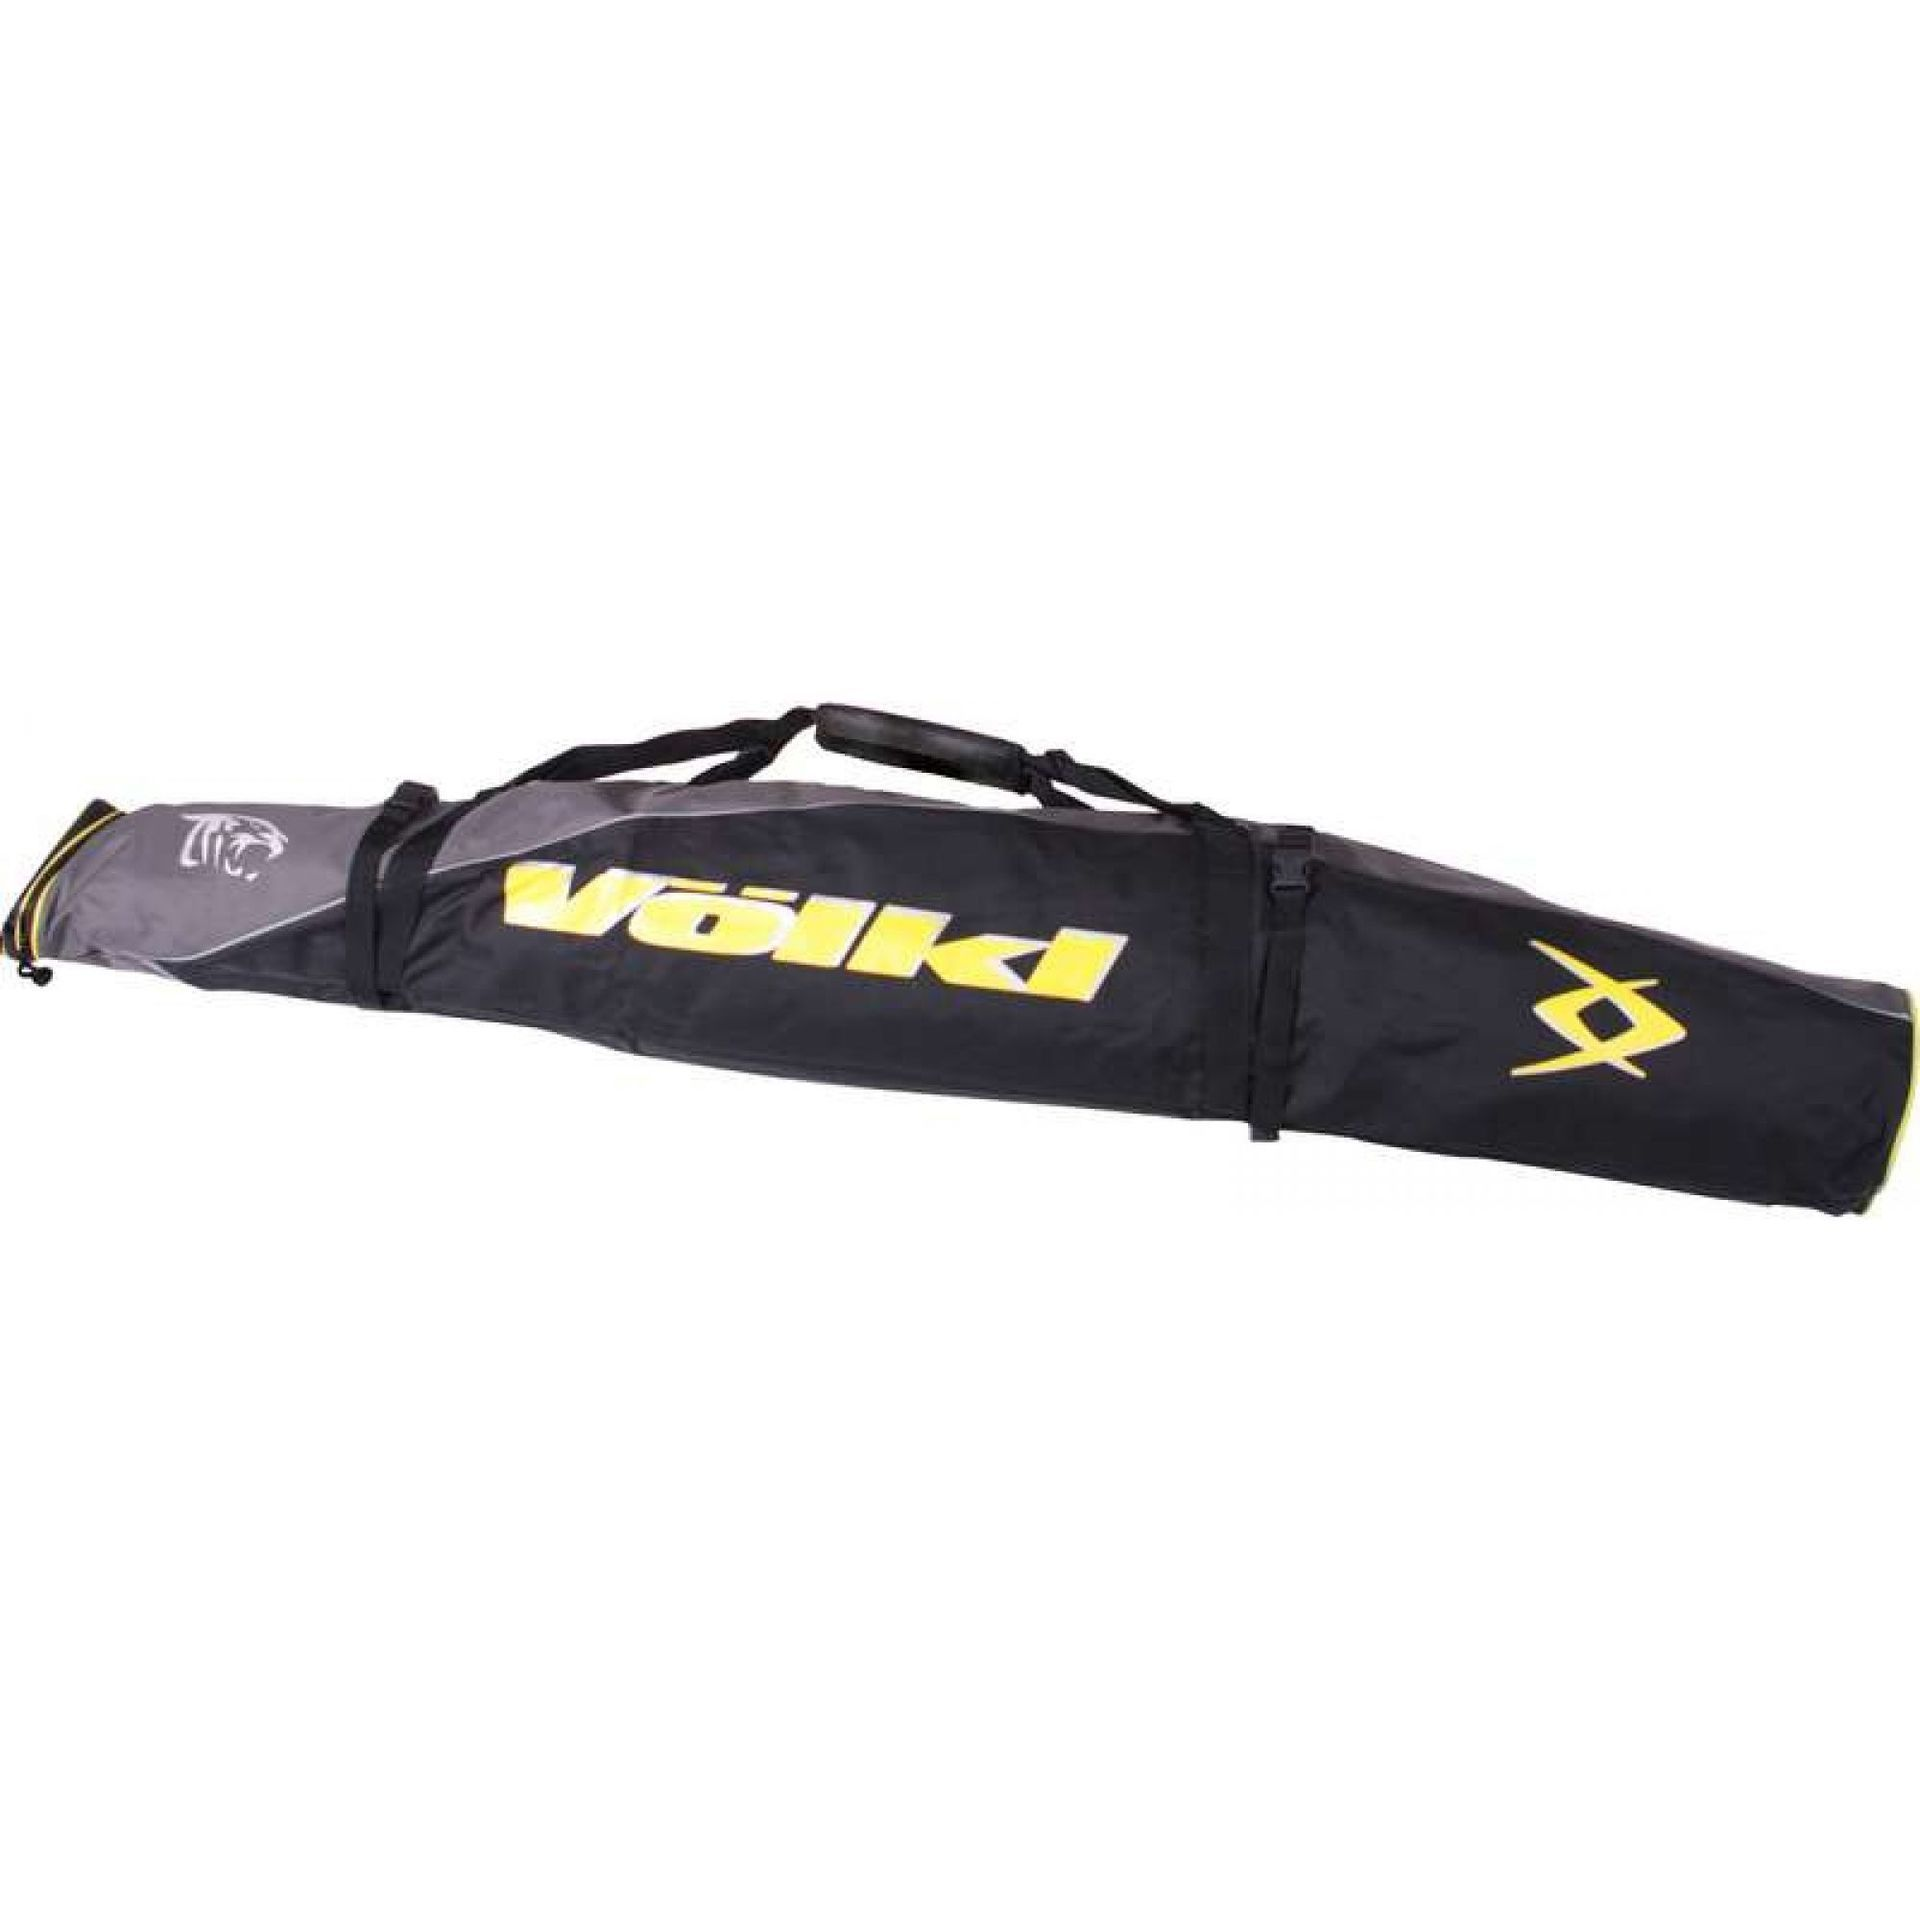 POKROWIEC NA NARTY VOELKL SINGLE SKI BAG